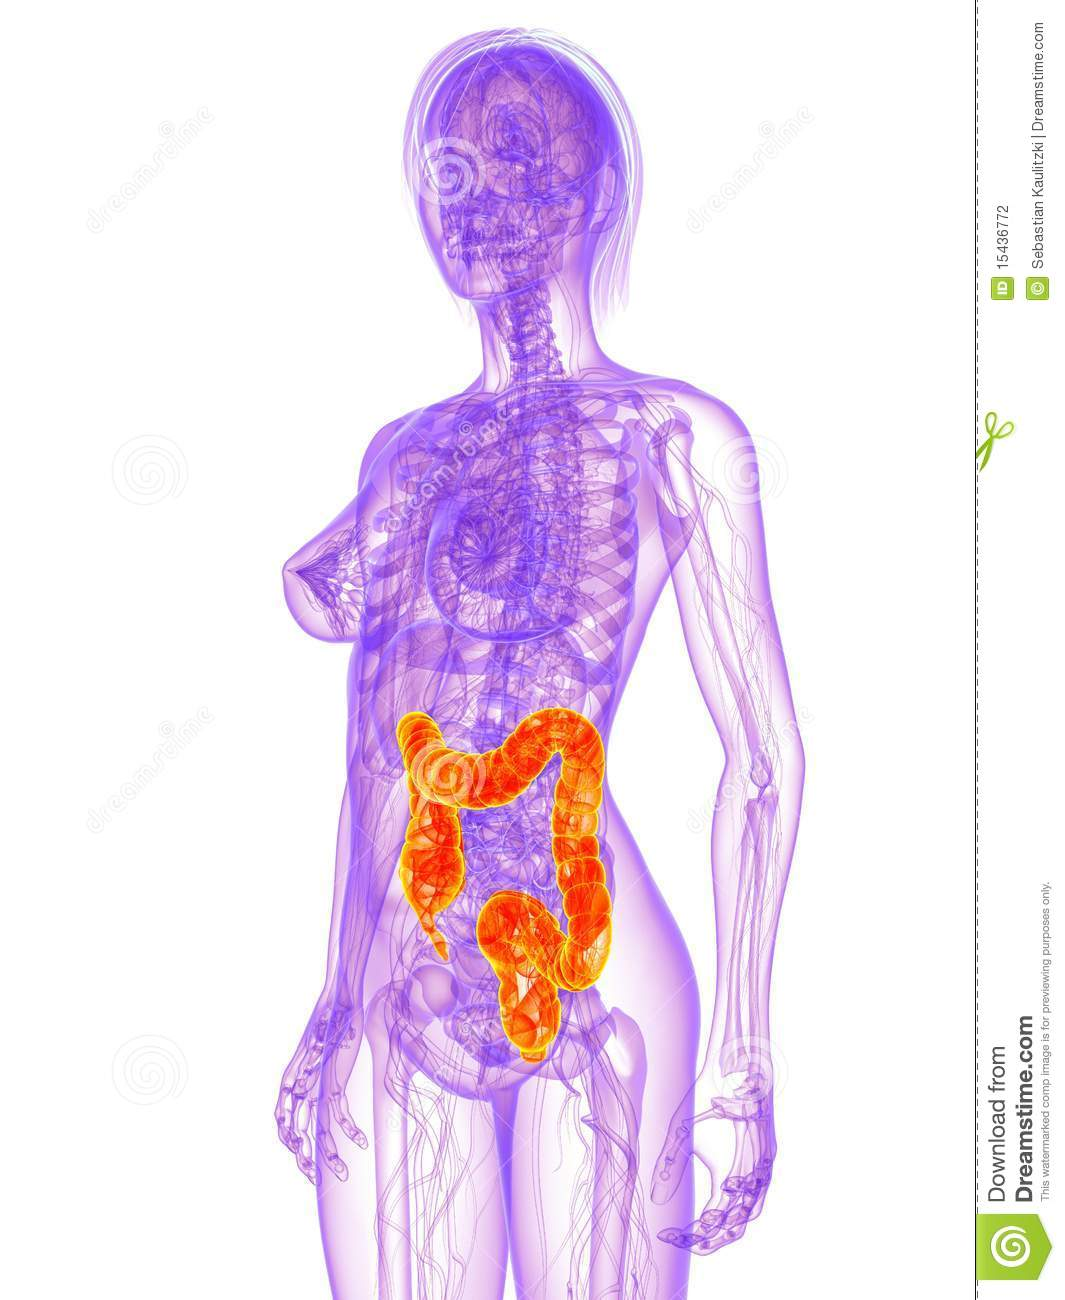 Female anatomy - colon stock illustration. Illustration of anatomy ...